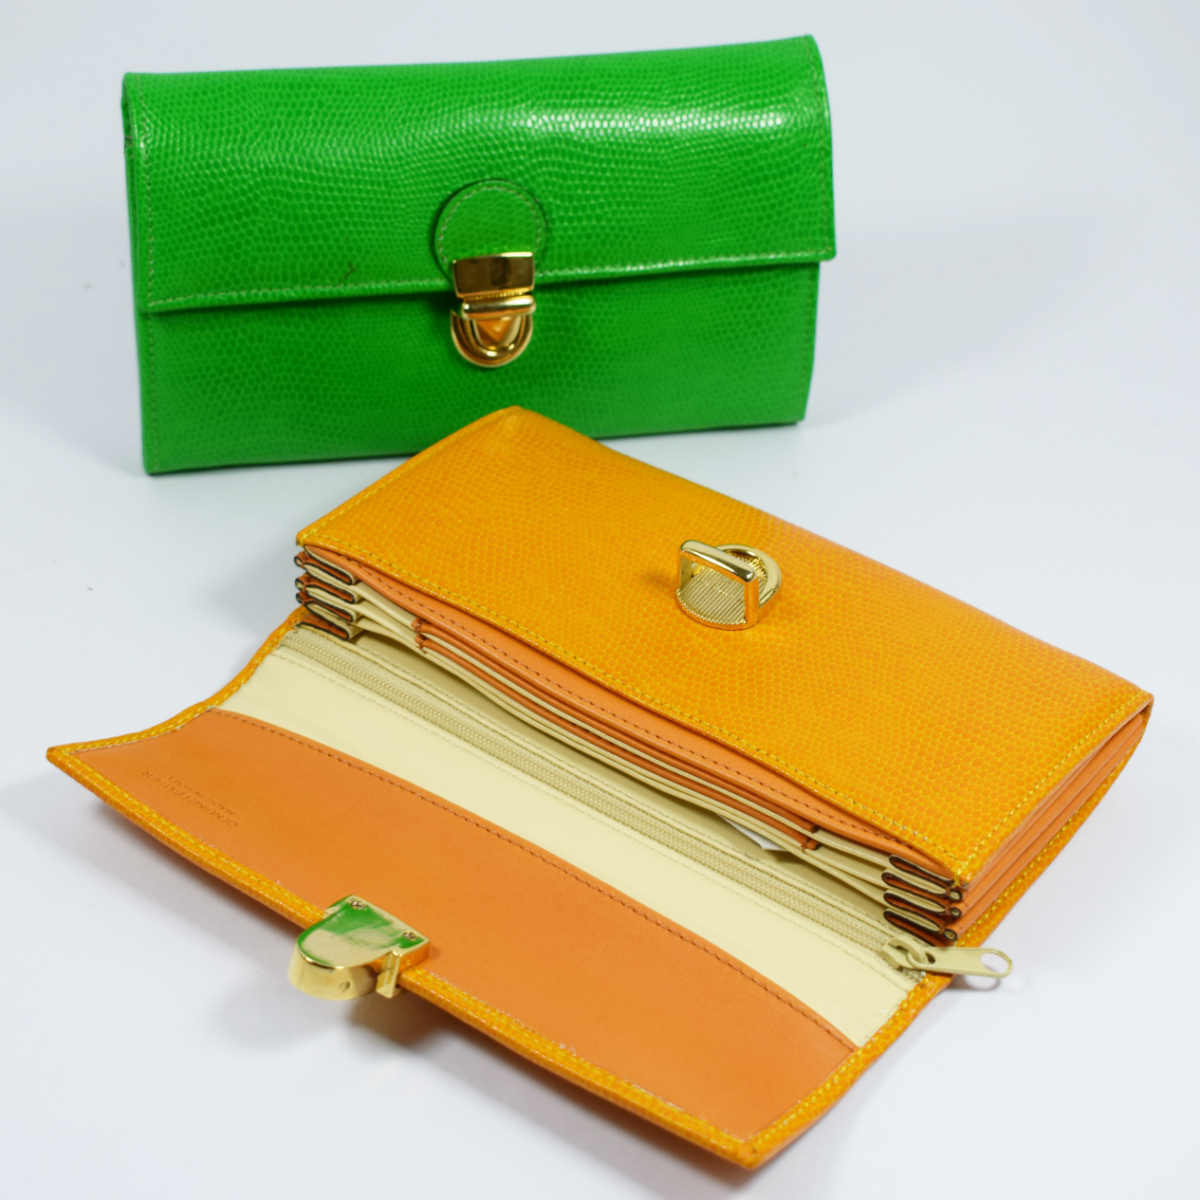 1604 WOMEN WALLET WITH BELLOWS by Bottega Fiorentina